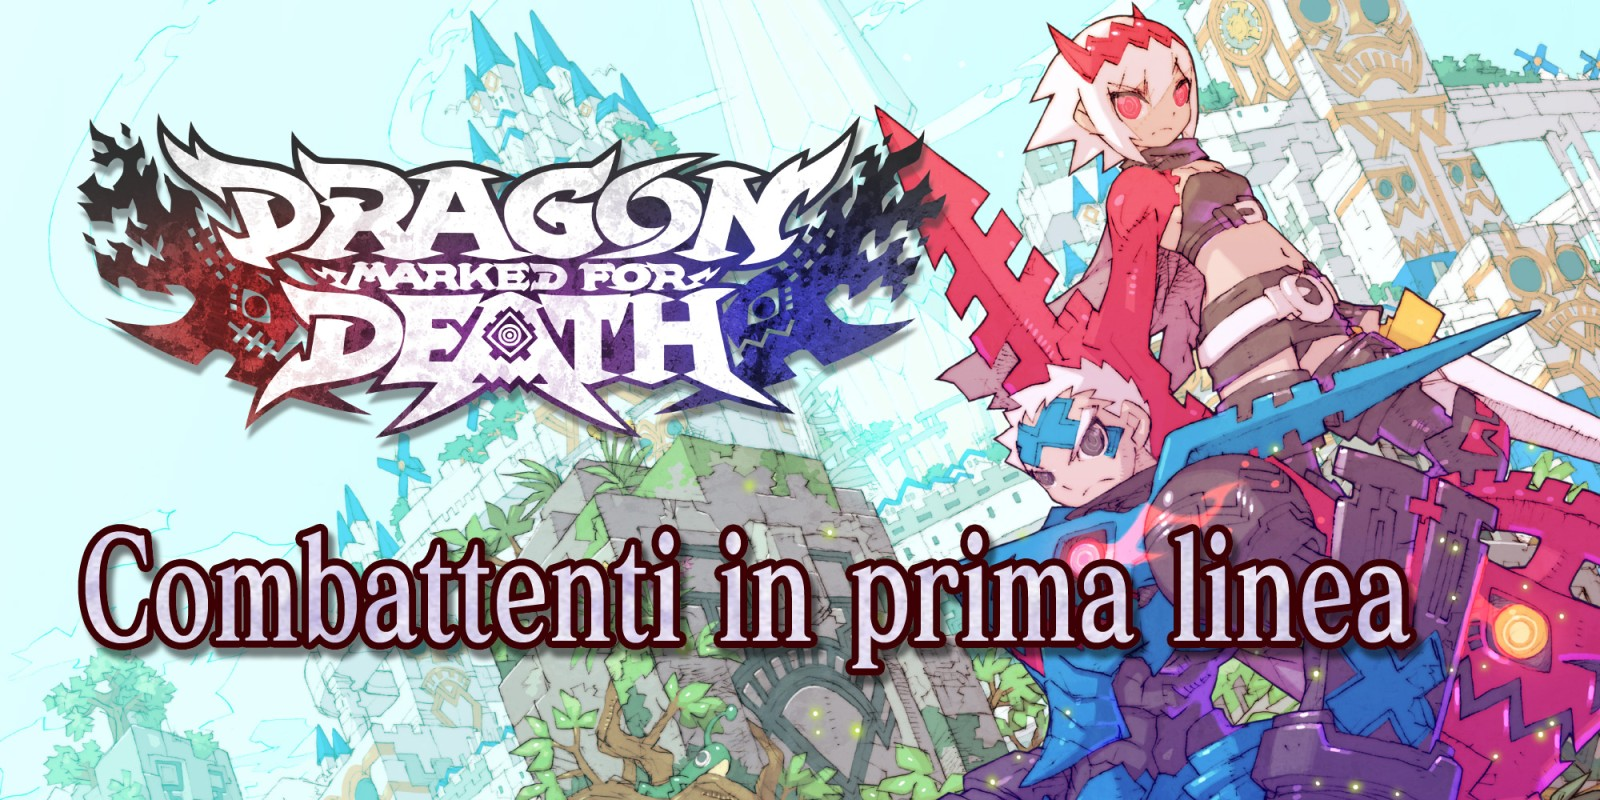 Dragon Marked for Death: Combattenti in prima linea